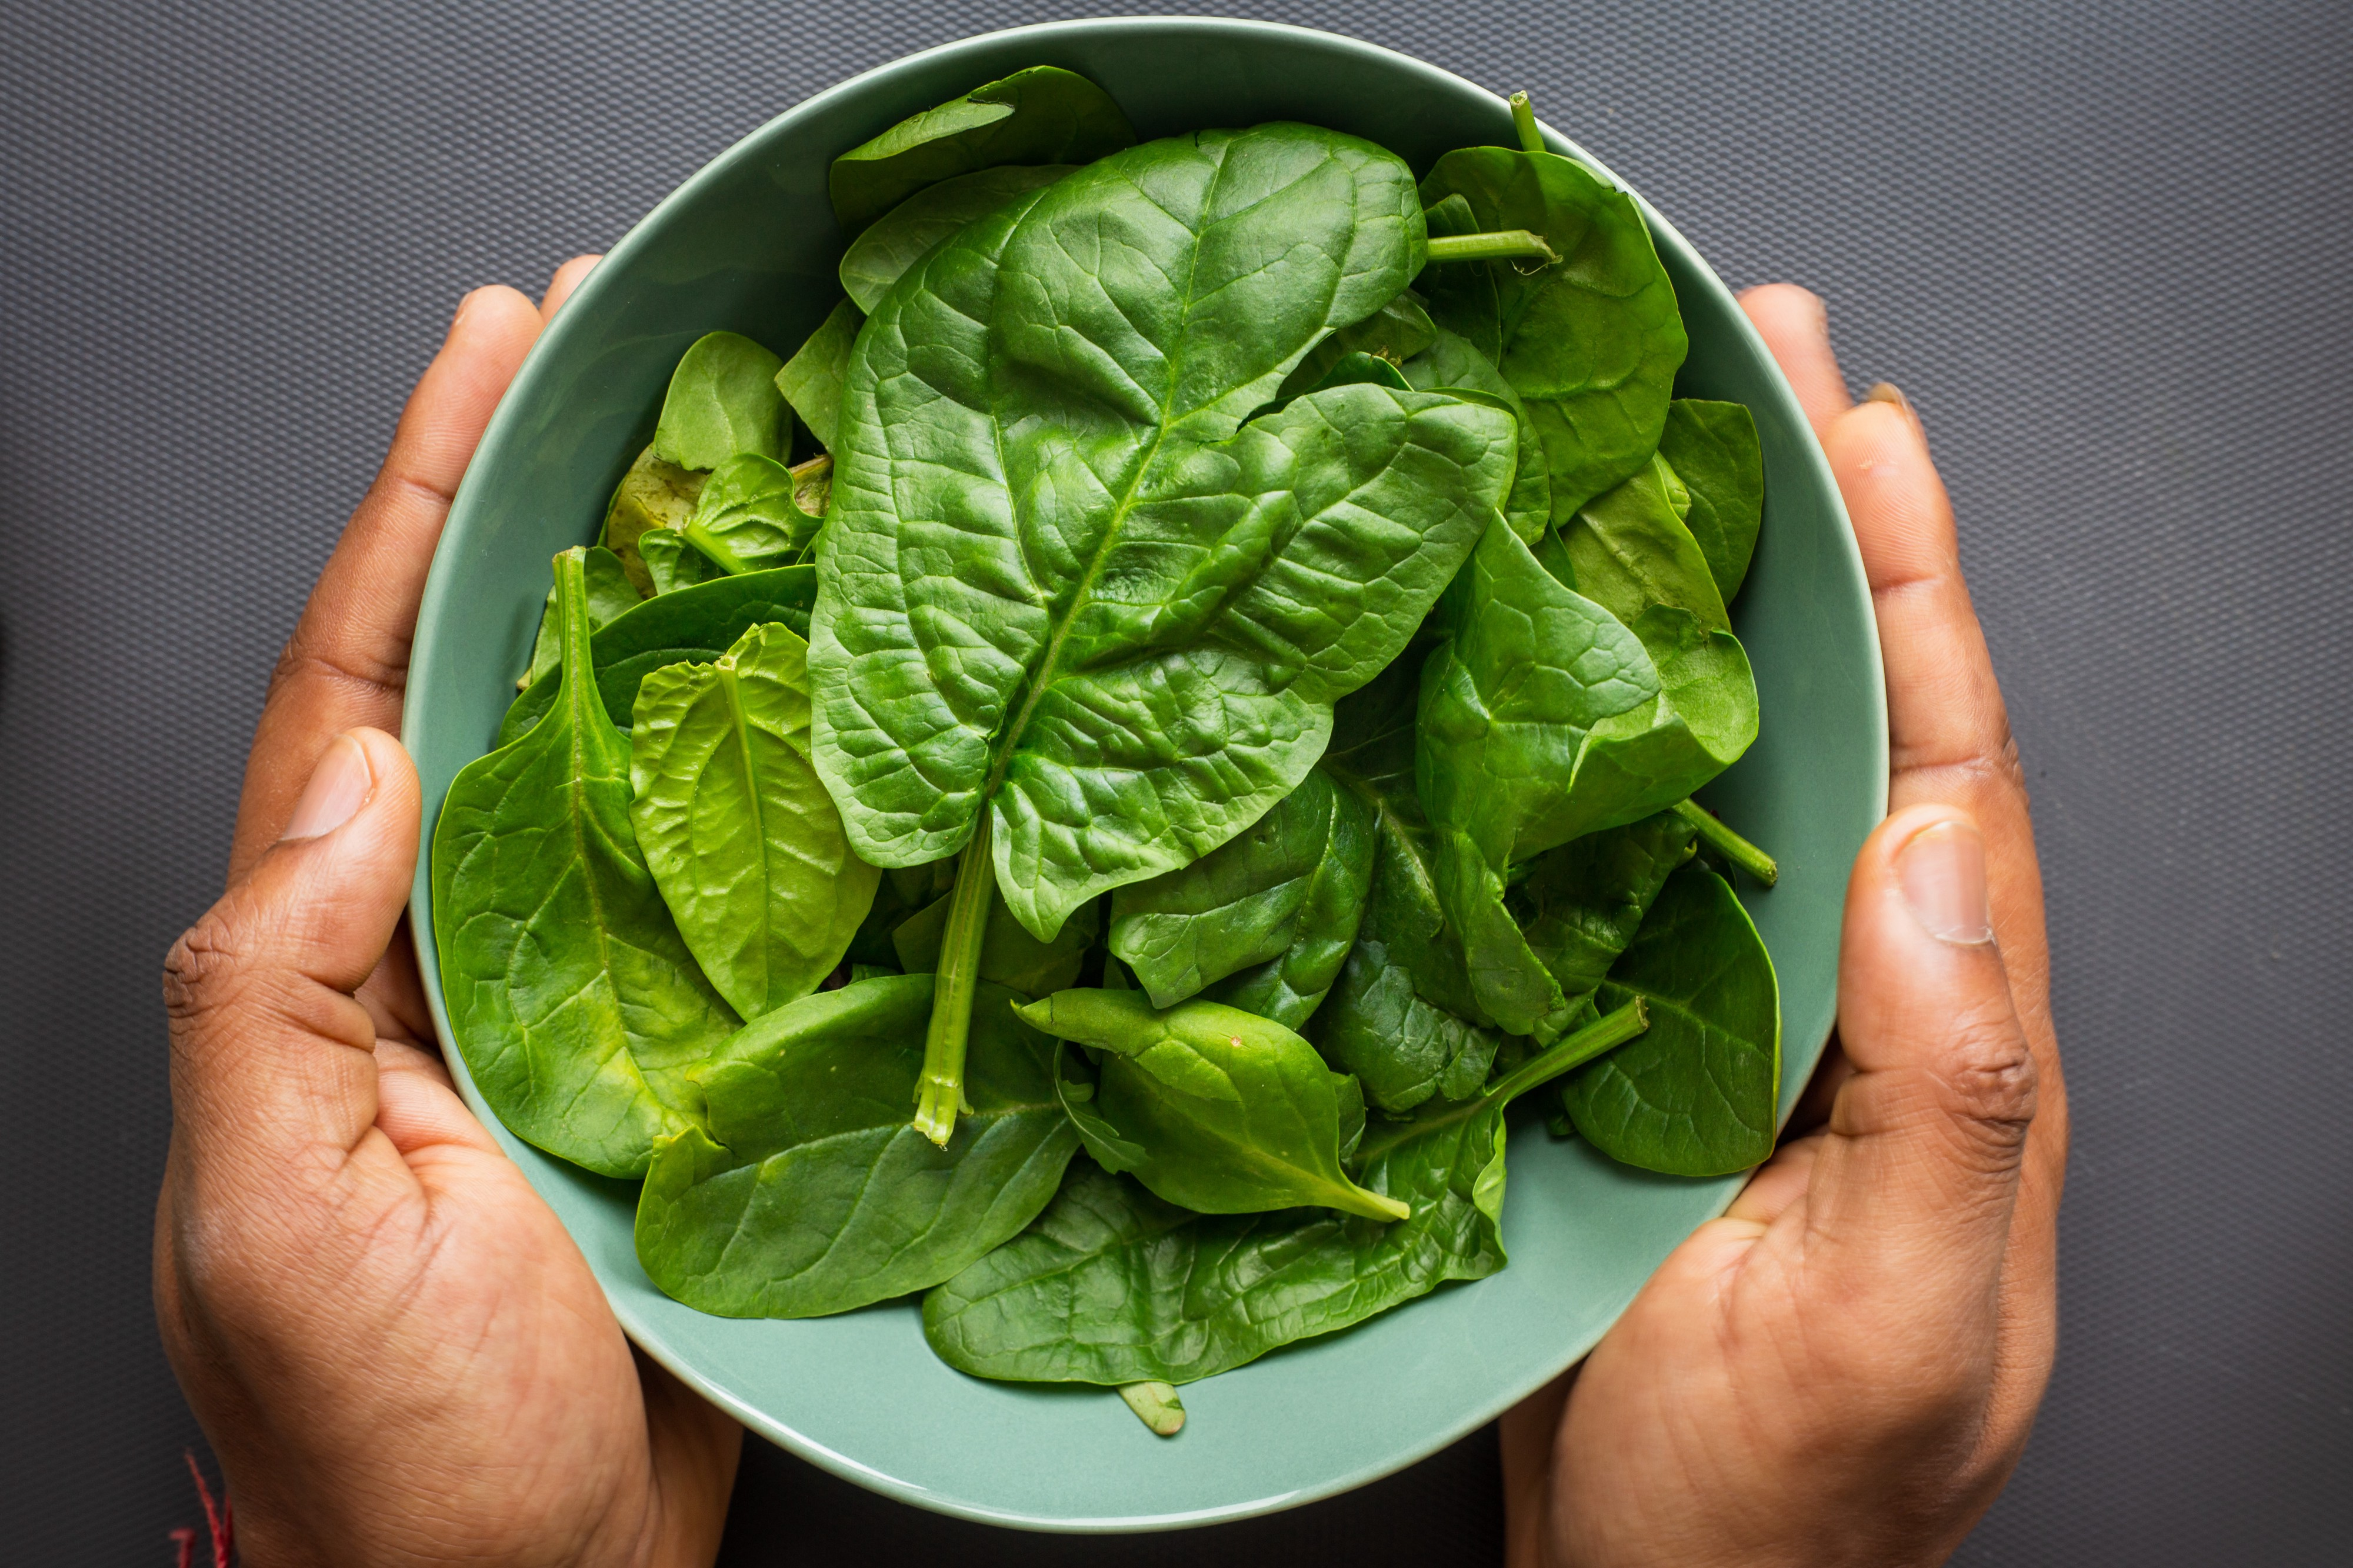 A bowl of greens